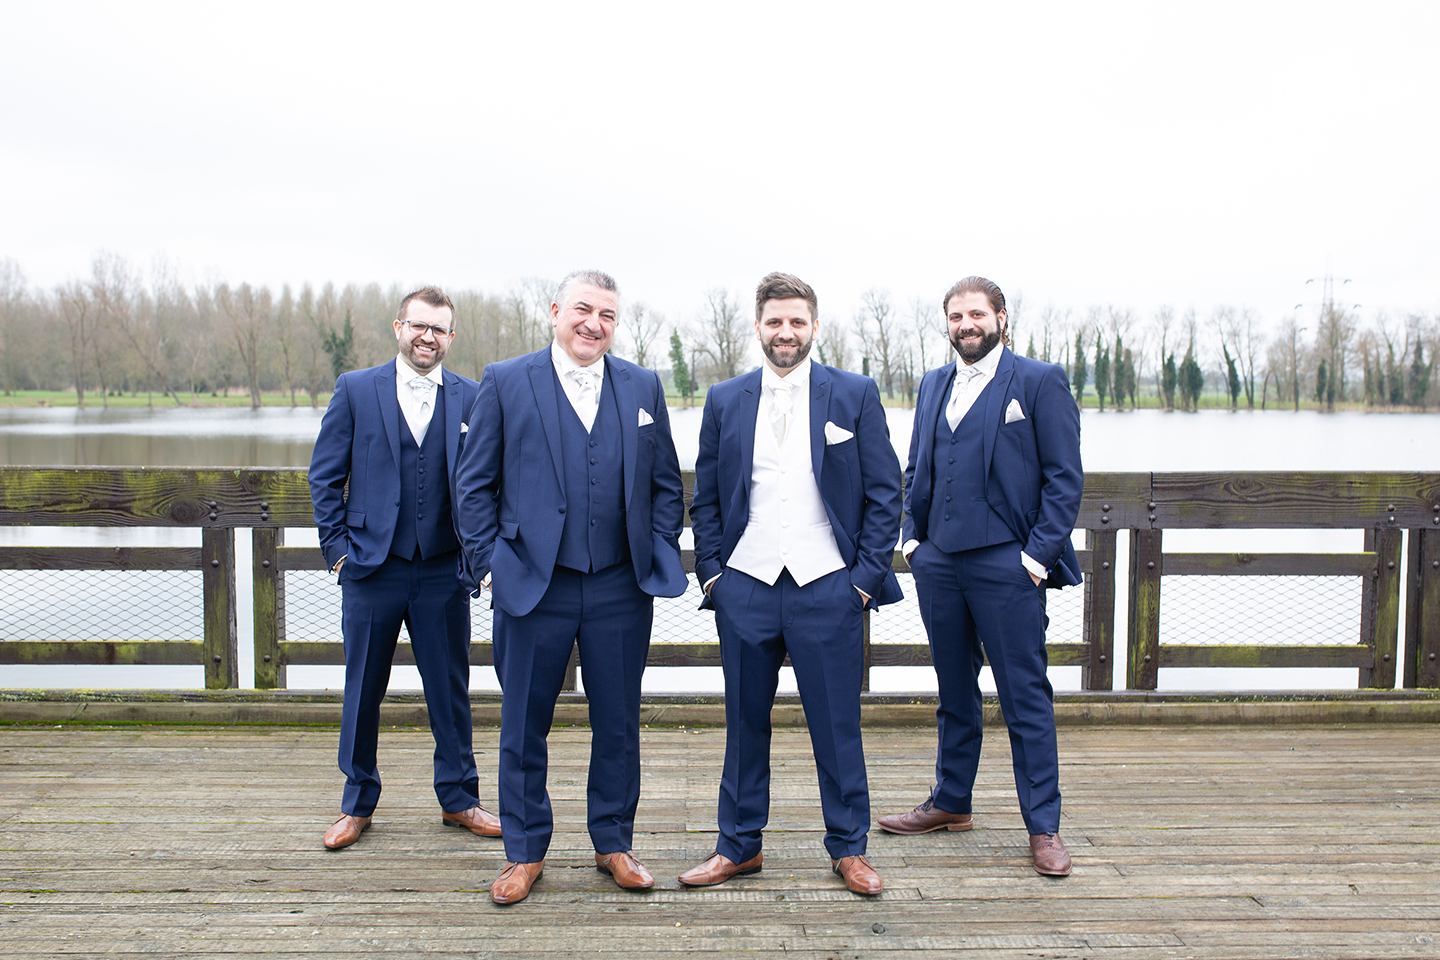 The groom and groomsmen wore navy wedding suits for this spring wedding at Bassmead Manor Barns